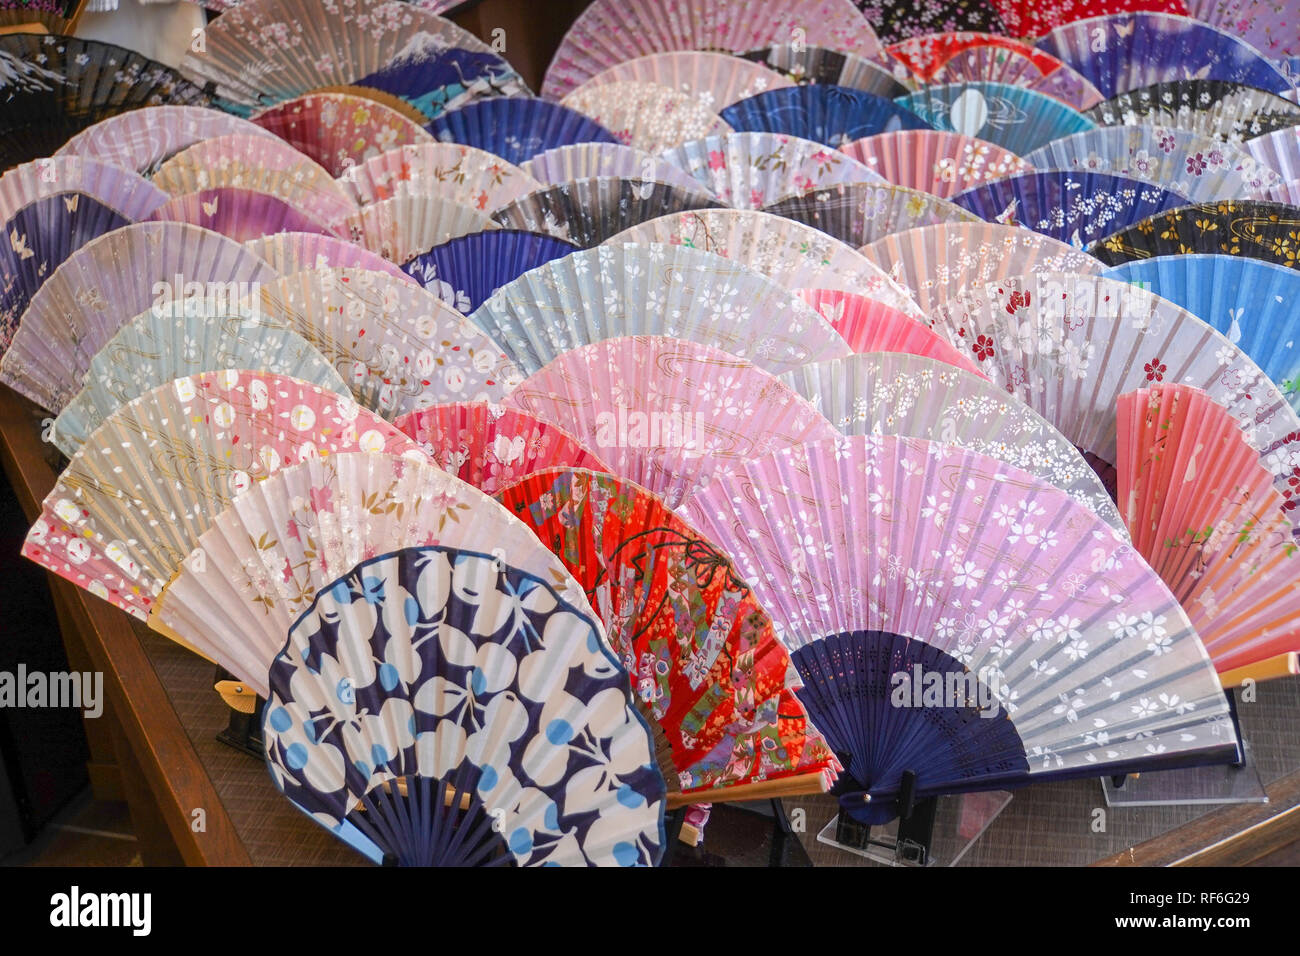 Japanese rice paper Fans on display in a Fan Shop. Photographed in Japan, Kyoto, - Stock Image